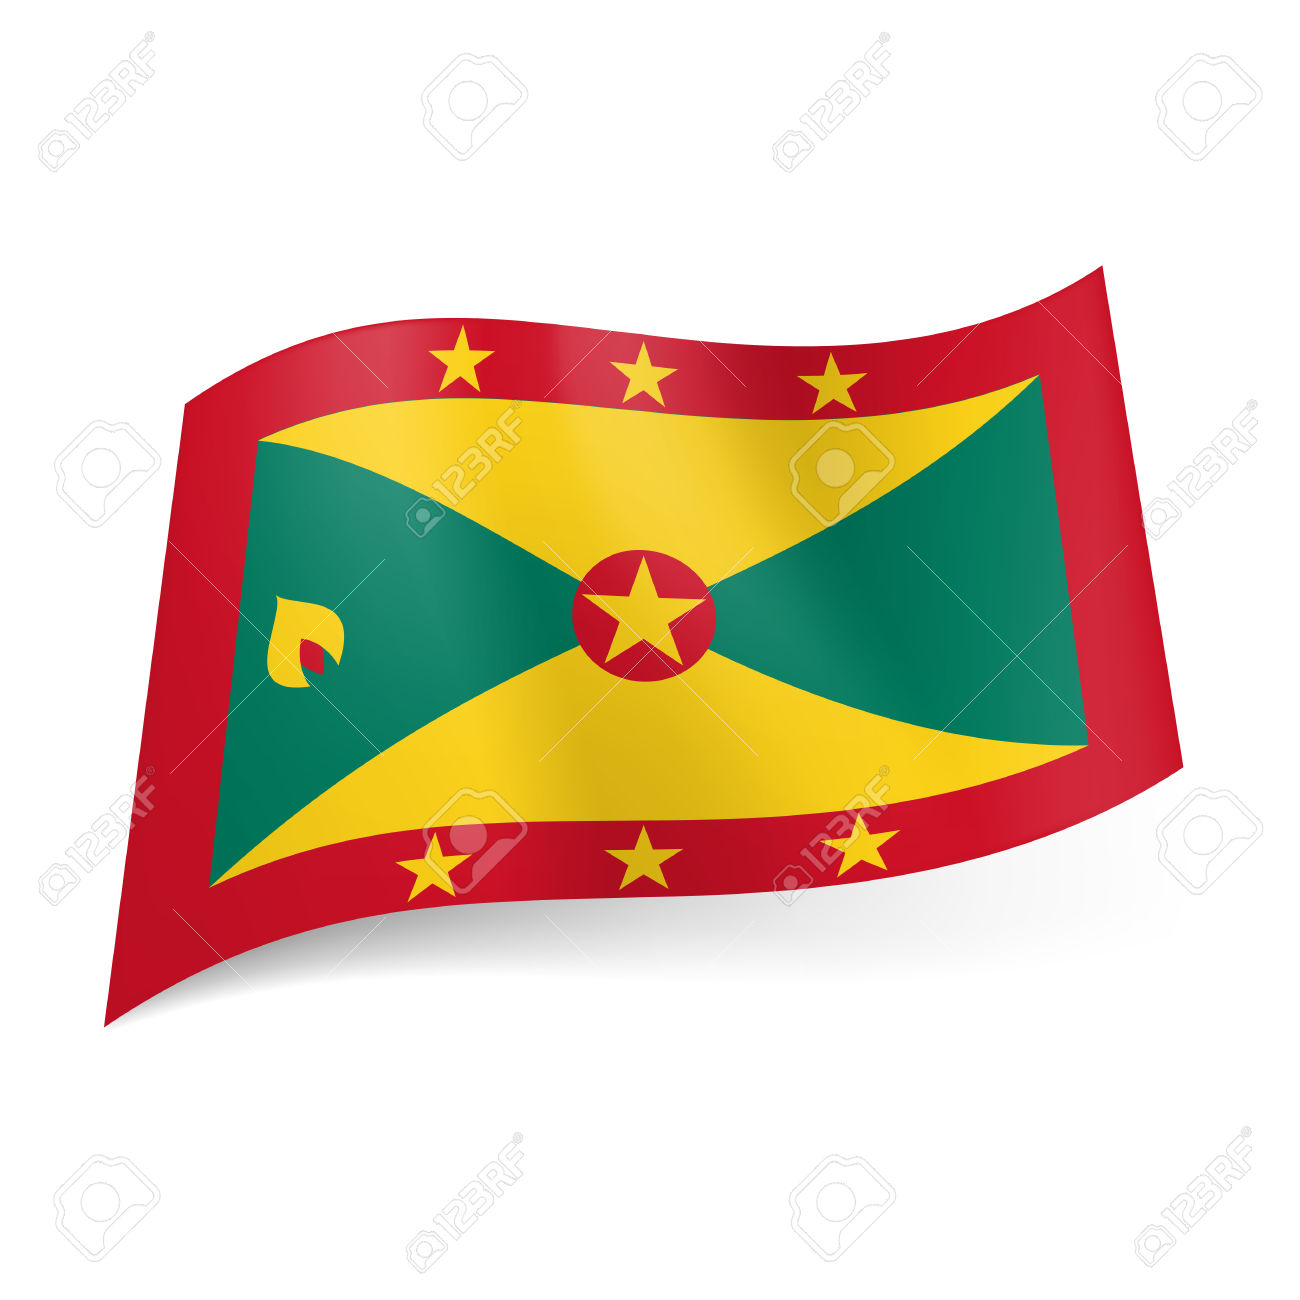 National Flag Of Grenada: Red Framed Field Of Green And Yellow.